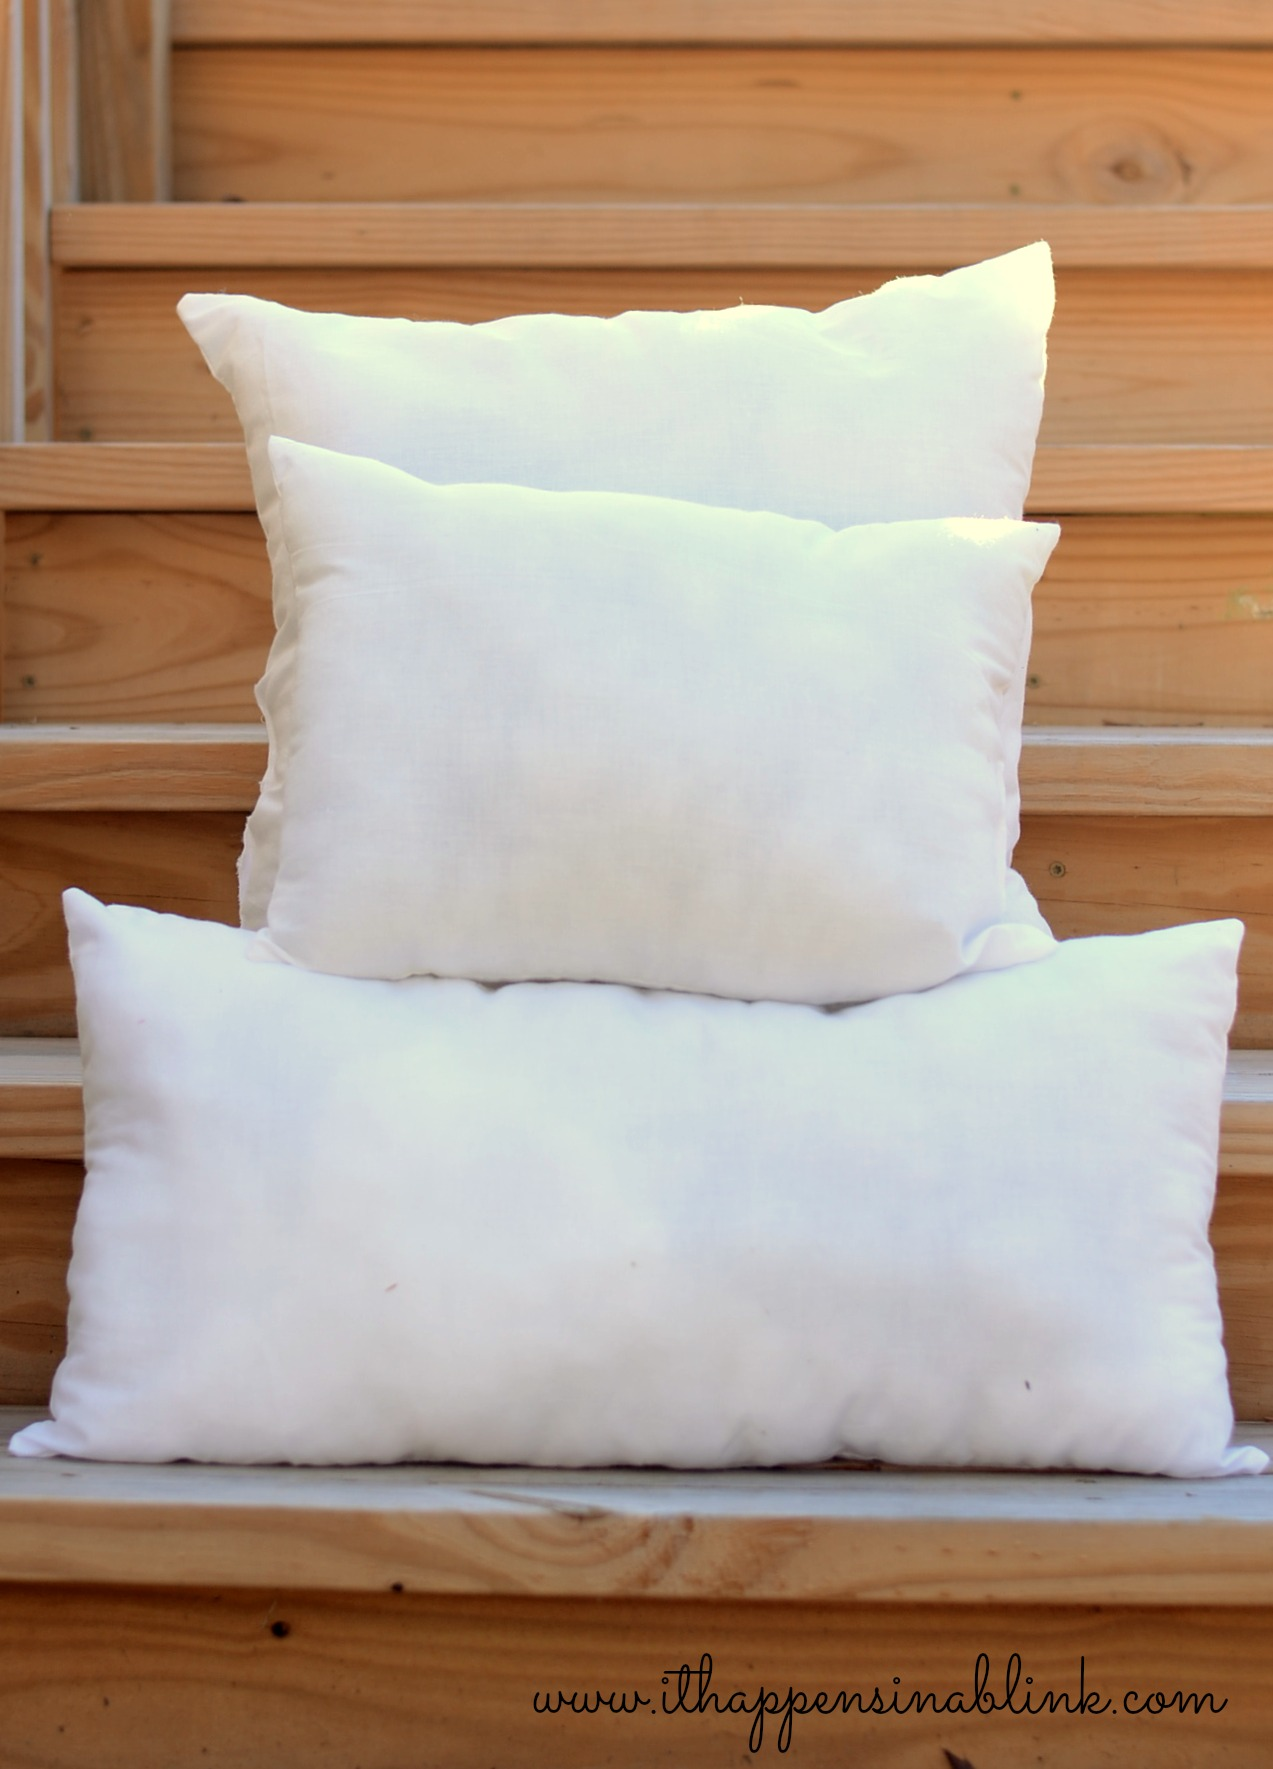 Make Your Own Pillow Inserts from It Happens in a Blink